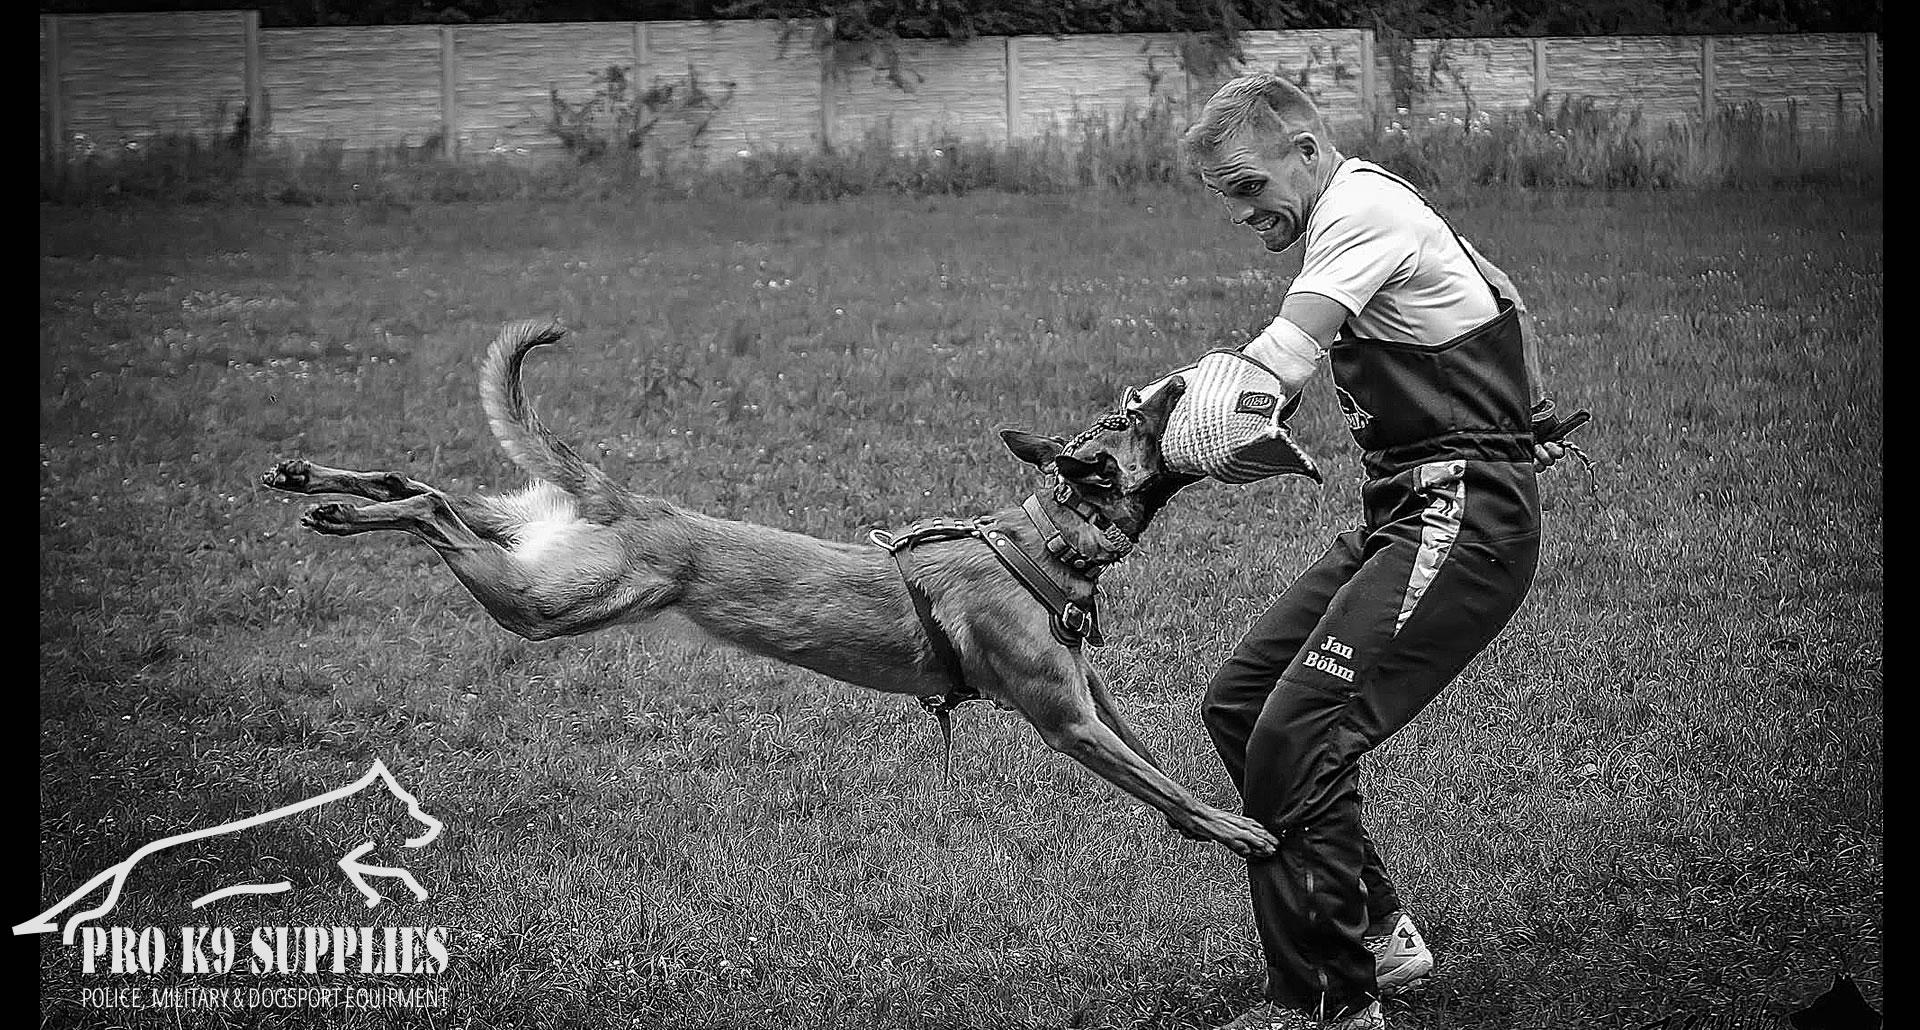 dog-bite-training-equipment